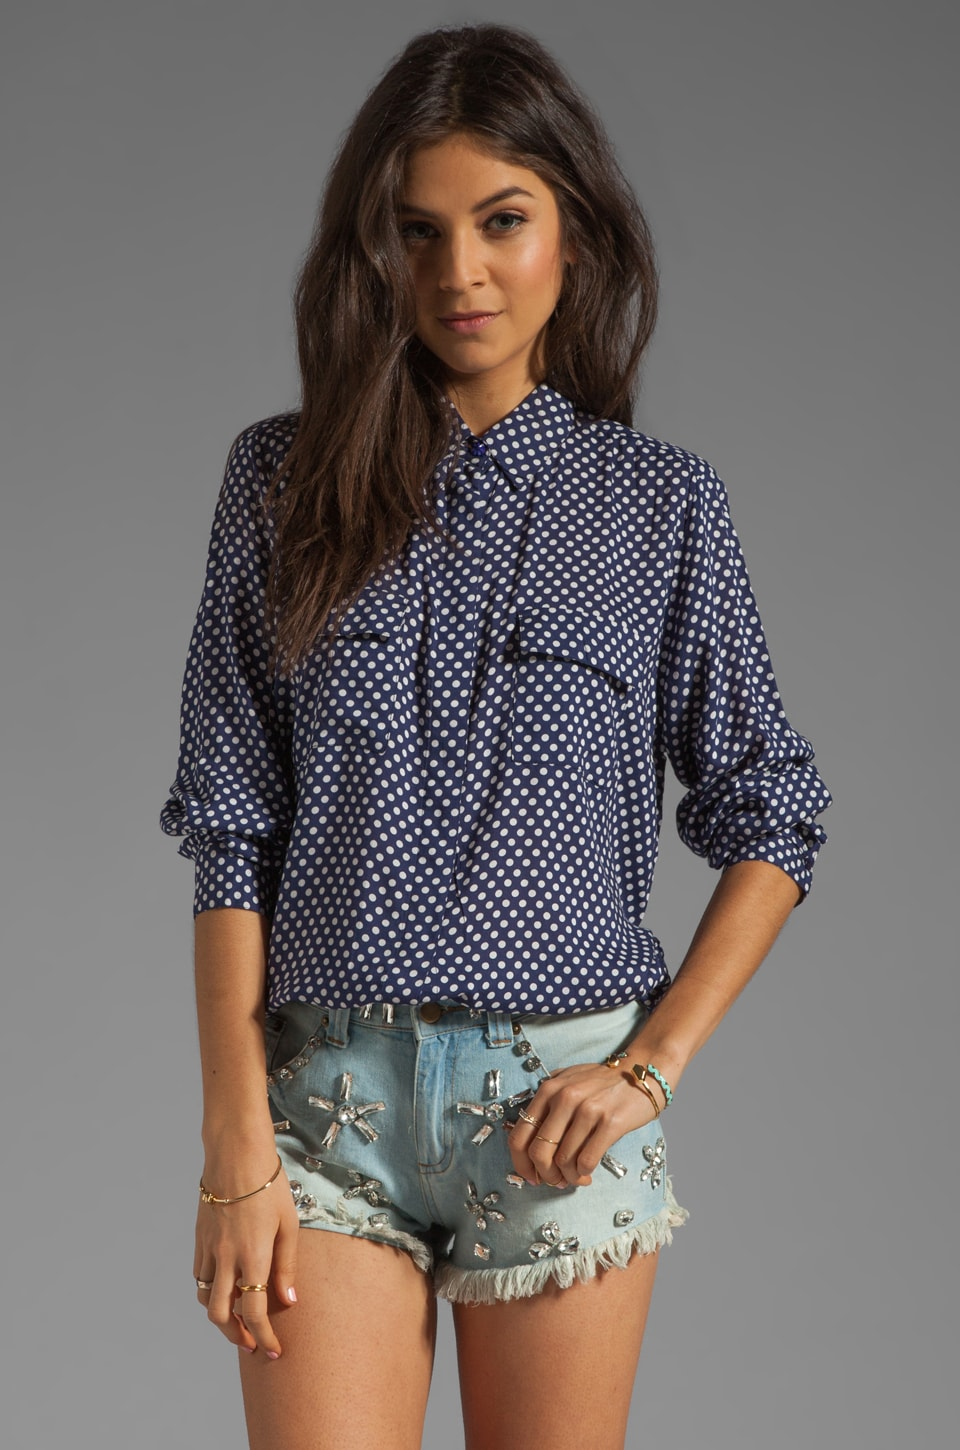 NEUW Polka Dot Shirt in Navy